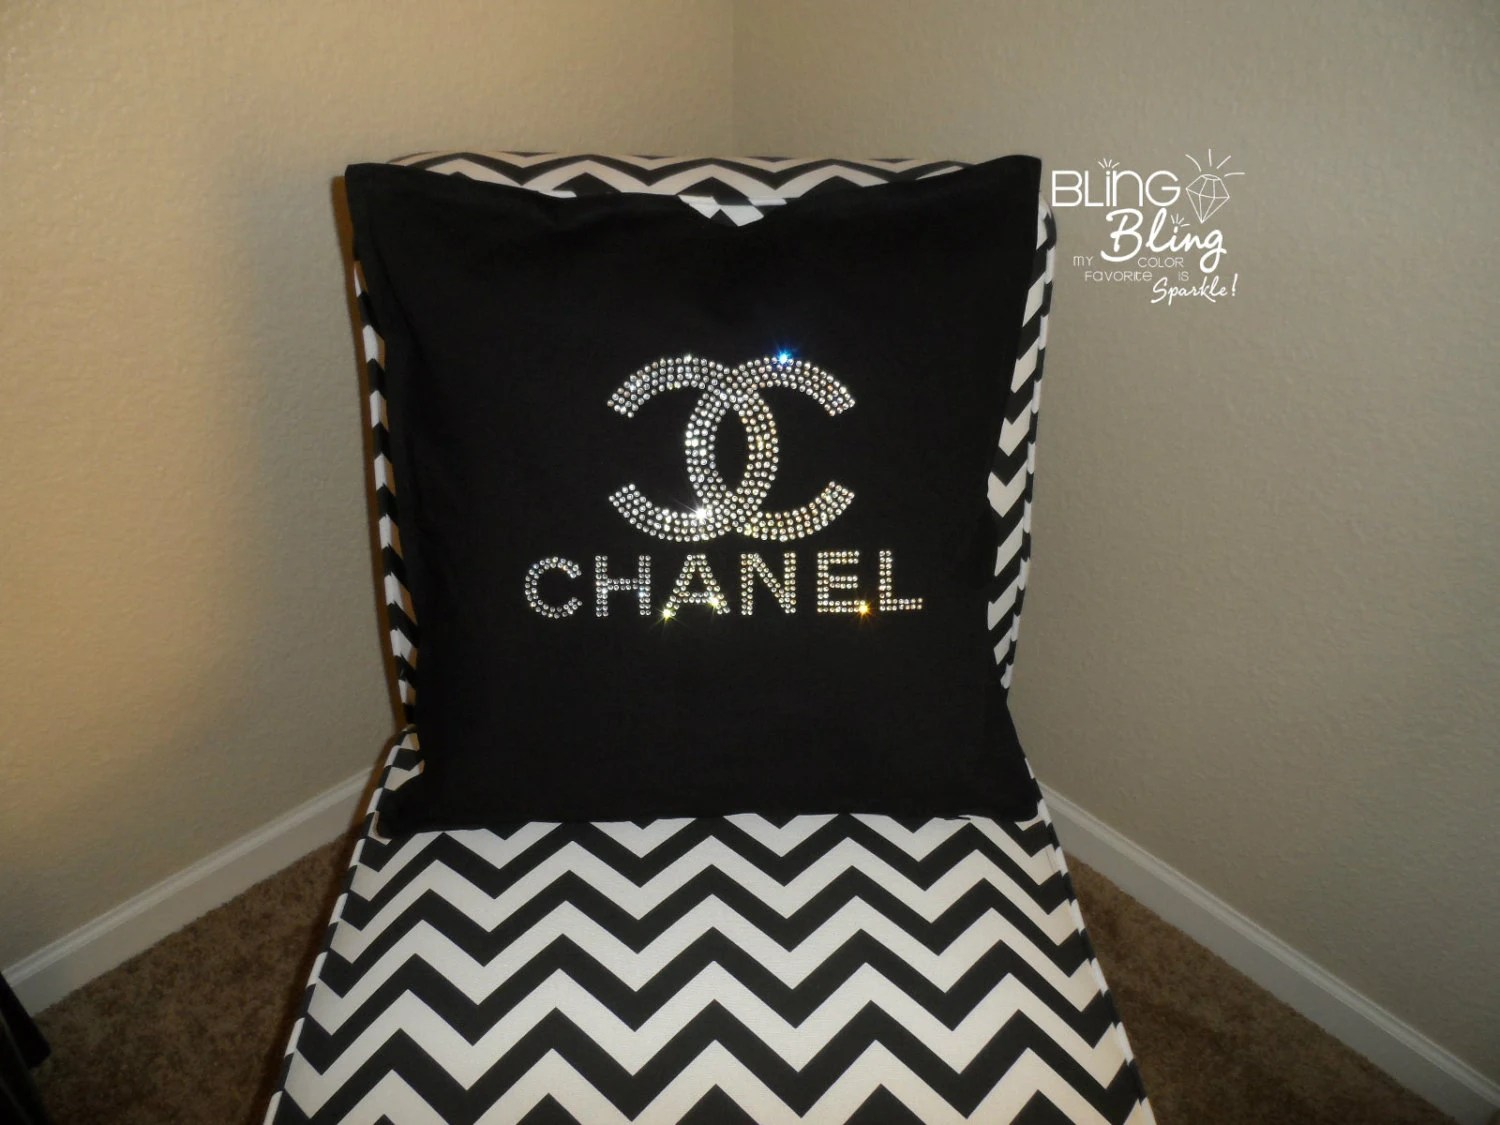 black glitter chair covers slipcovers for wing chairs bling strass chanel kissen